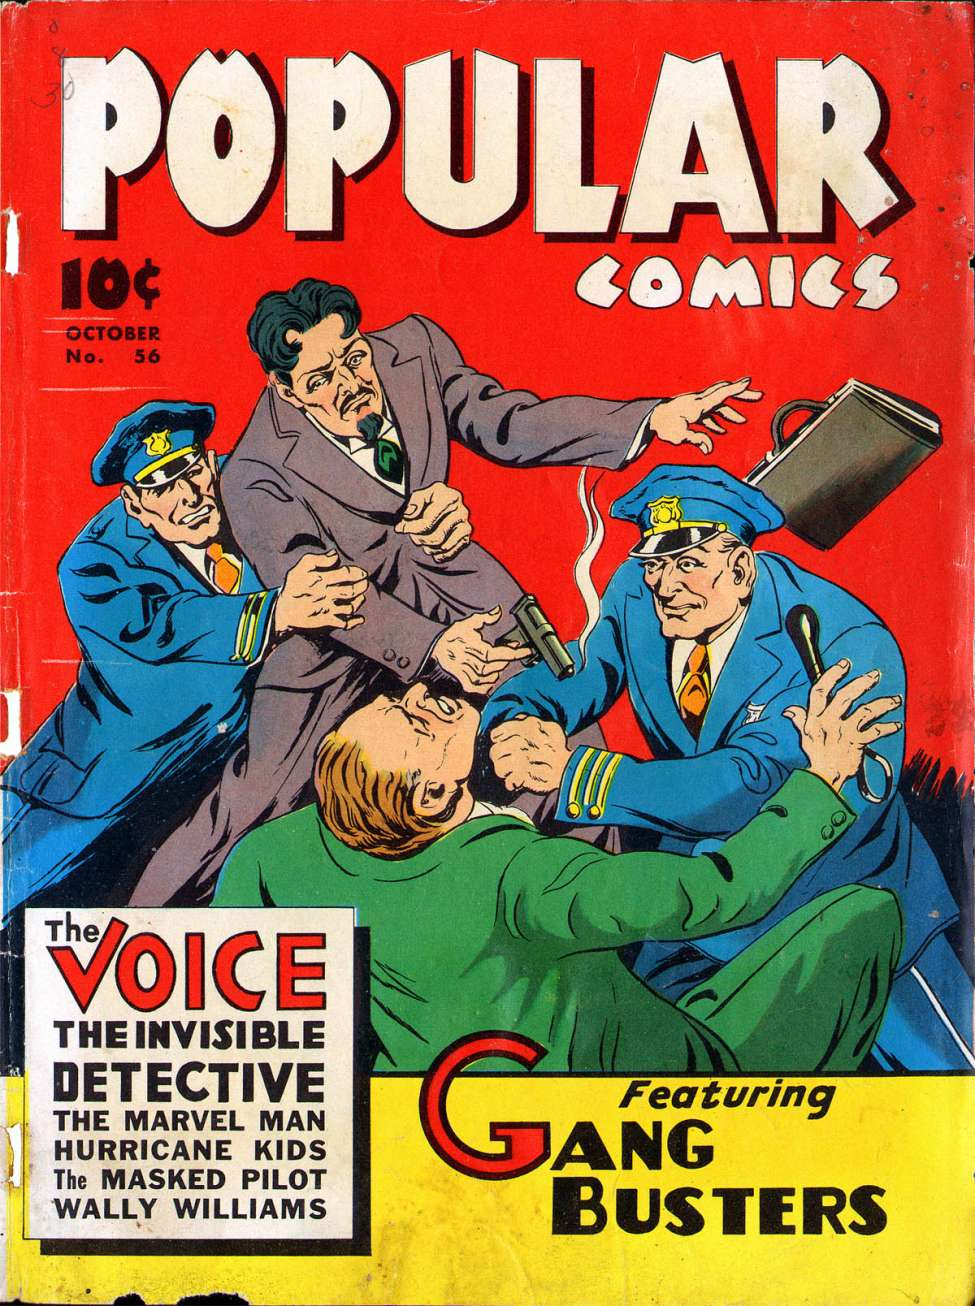 Comic Book Cover For Popular Comics #56